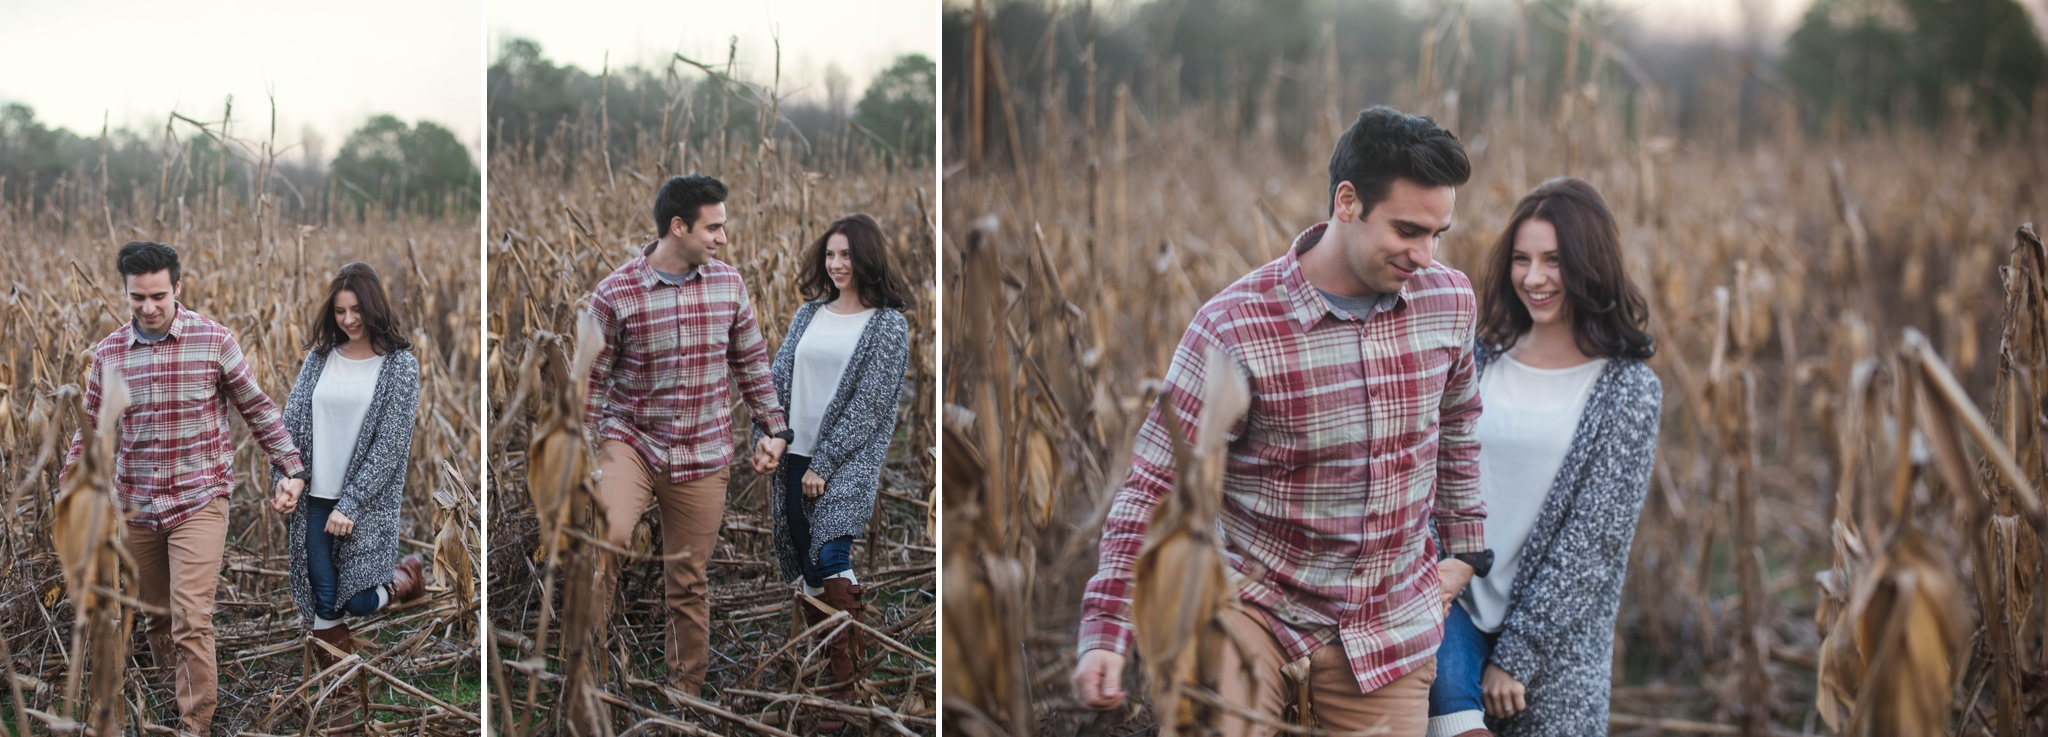 Fayetteville North Carolina Engagement Photographer - Rustic Cornfield Engagement Session - Mike and Jessica